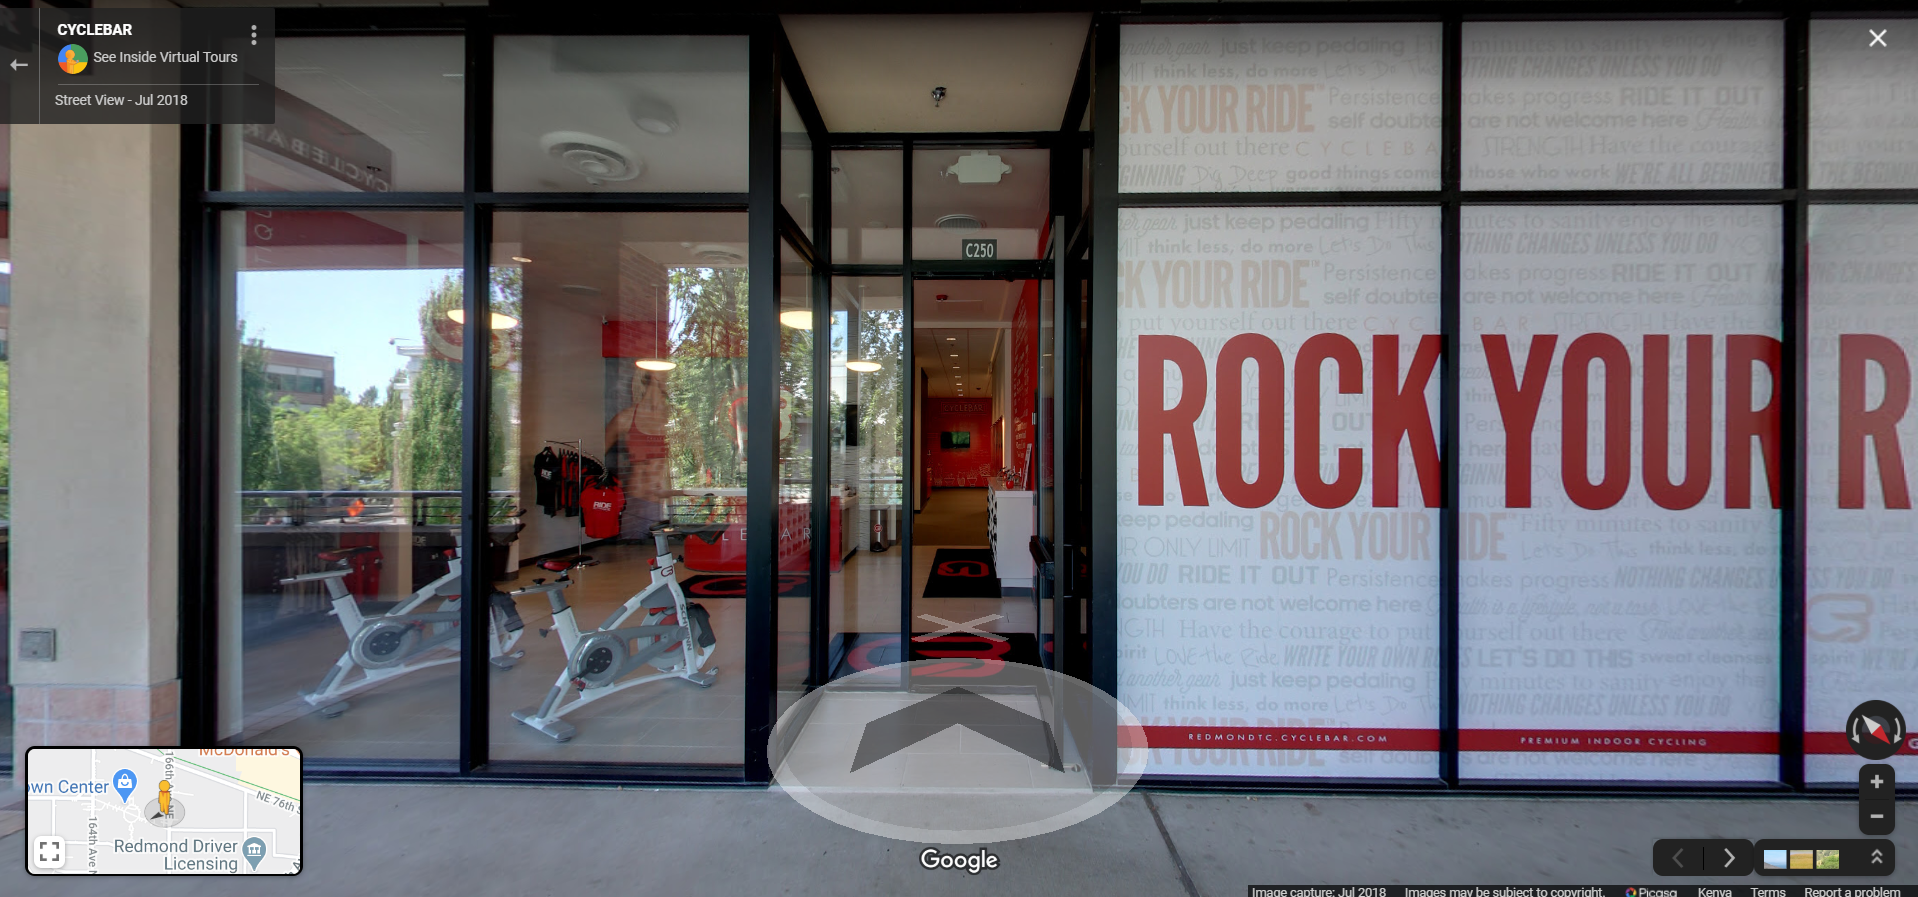 CycleBar - Redmond